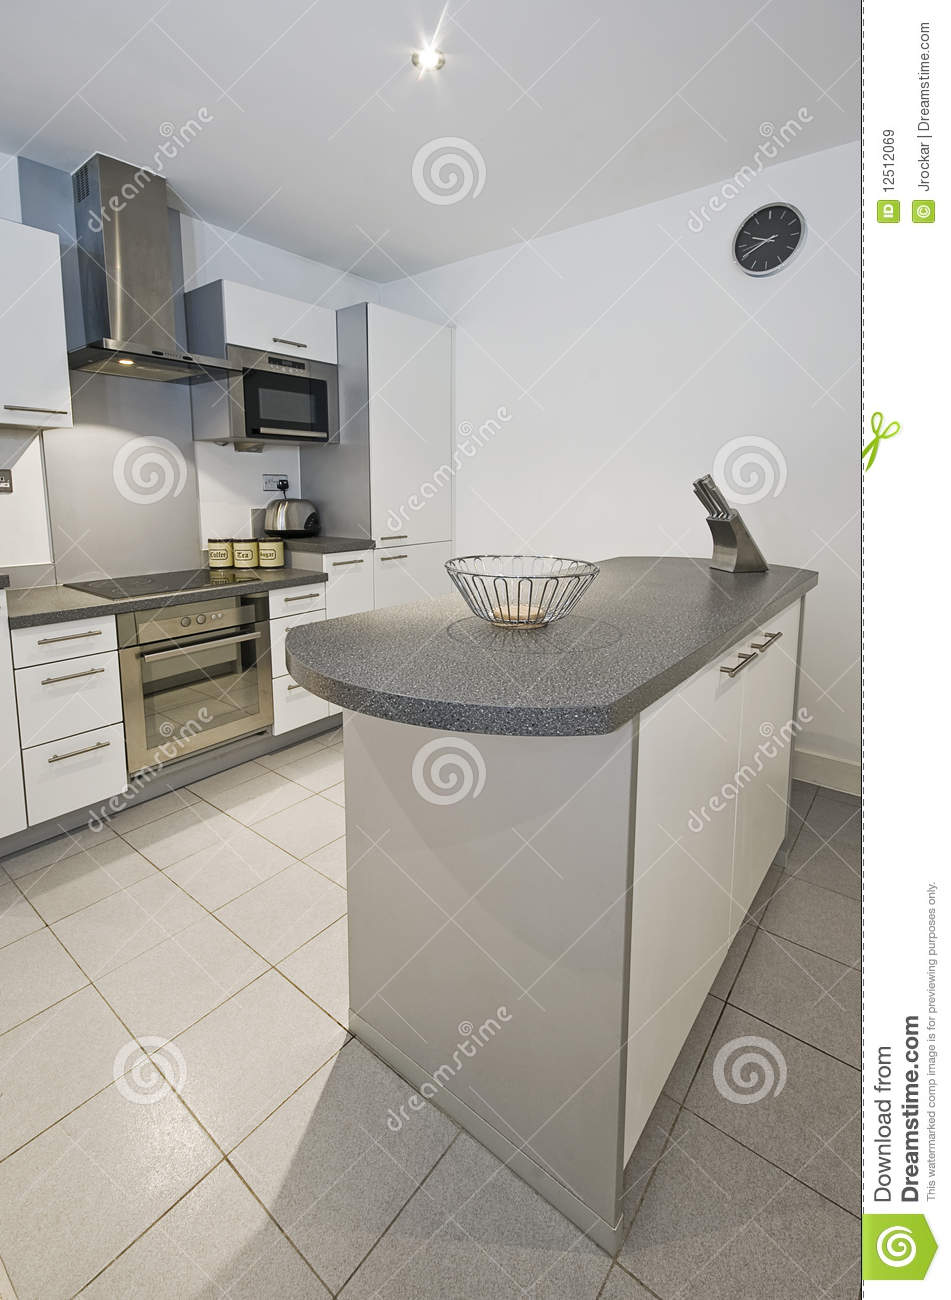 Kitchen With Work Zones Royalty Free Stock Images Image 12512069